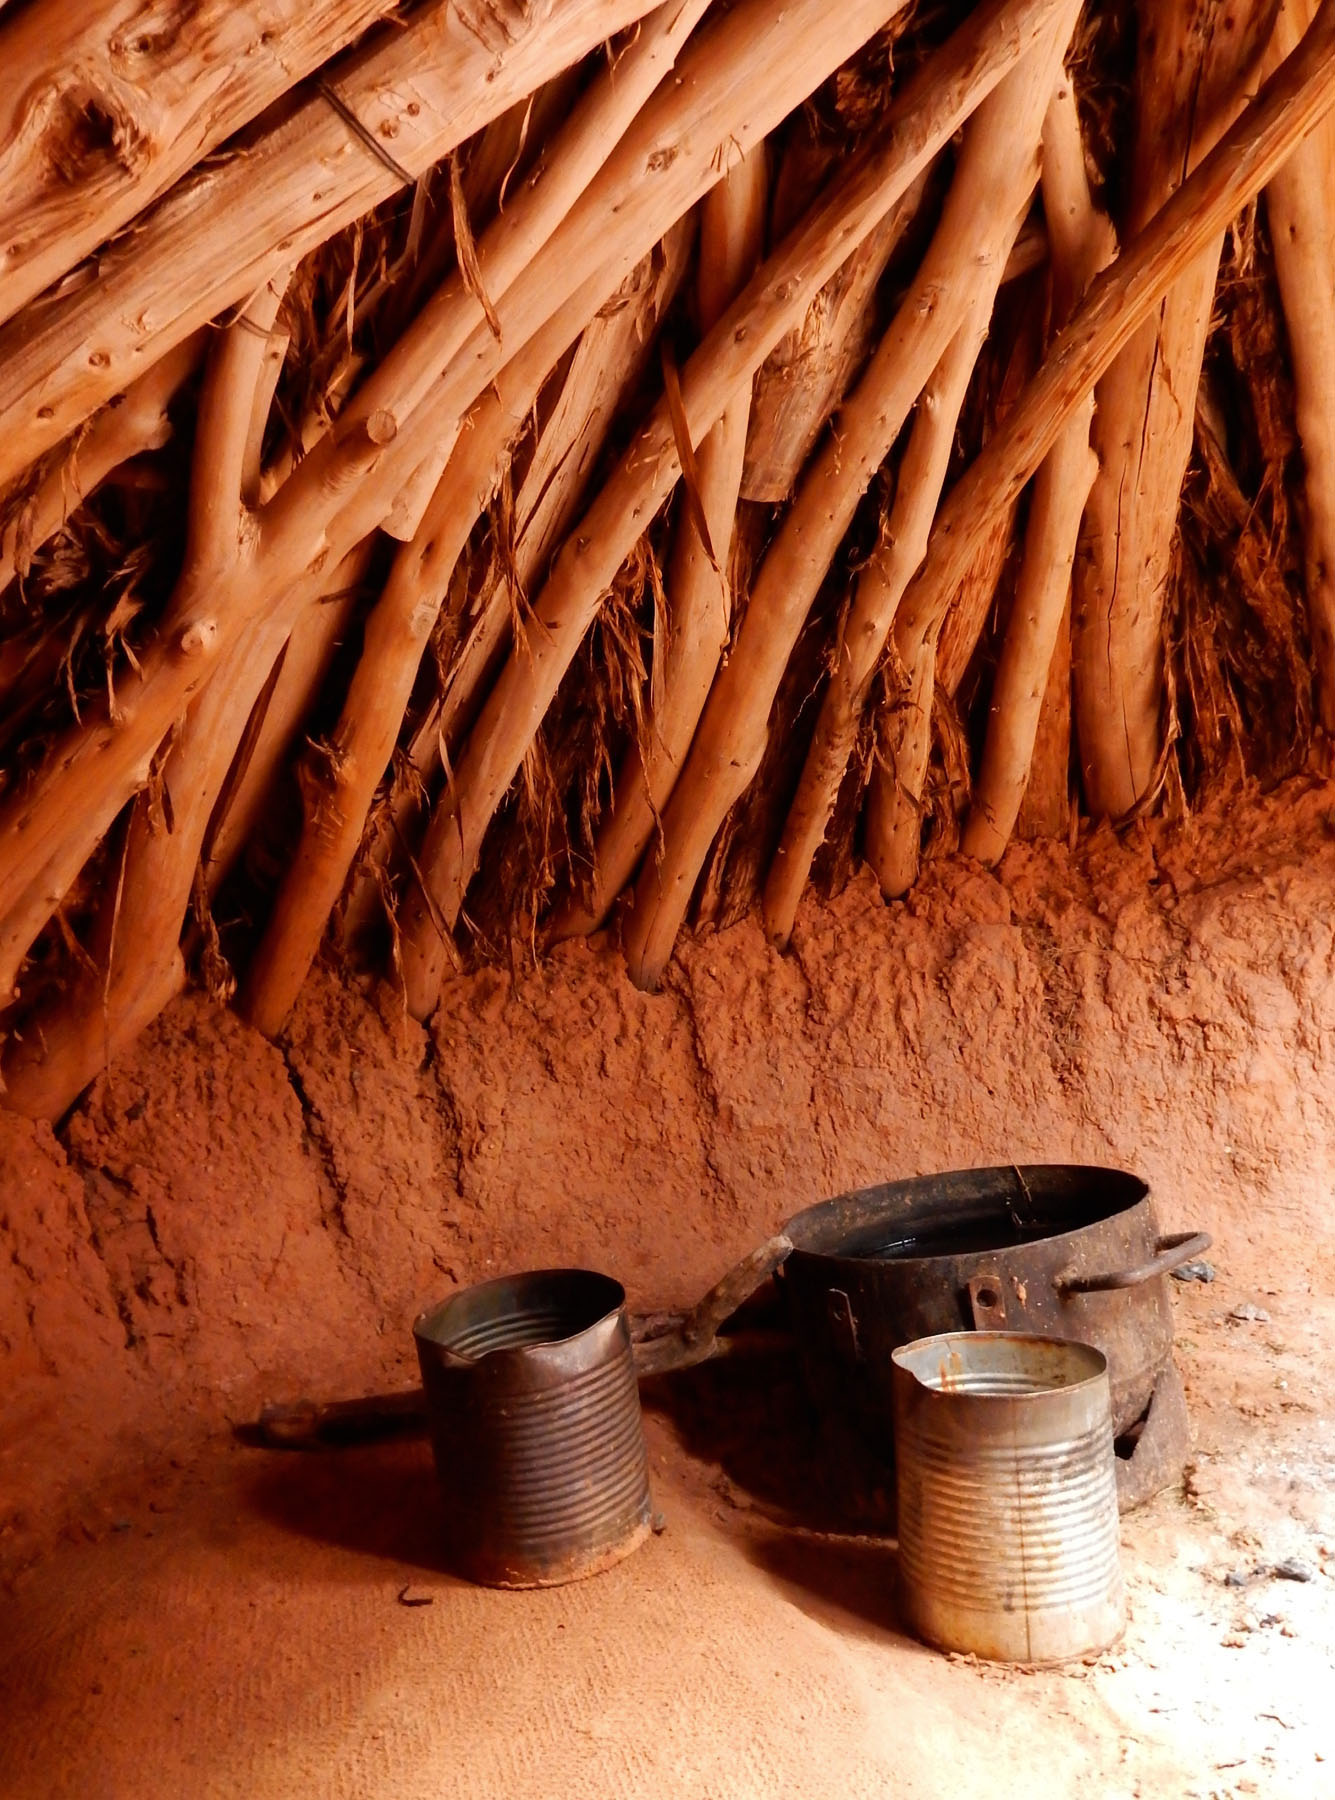 Photo: Lisa McCann. Title: Inside a Navajo sweat lodge